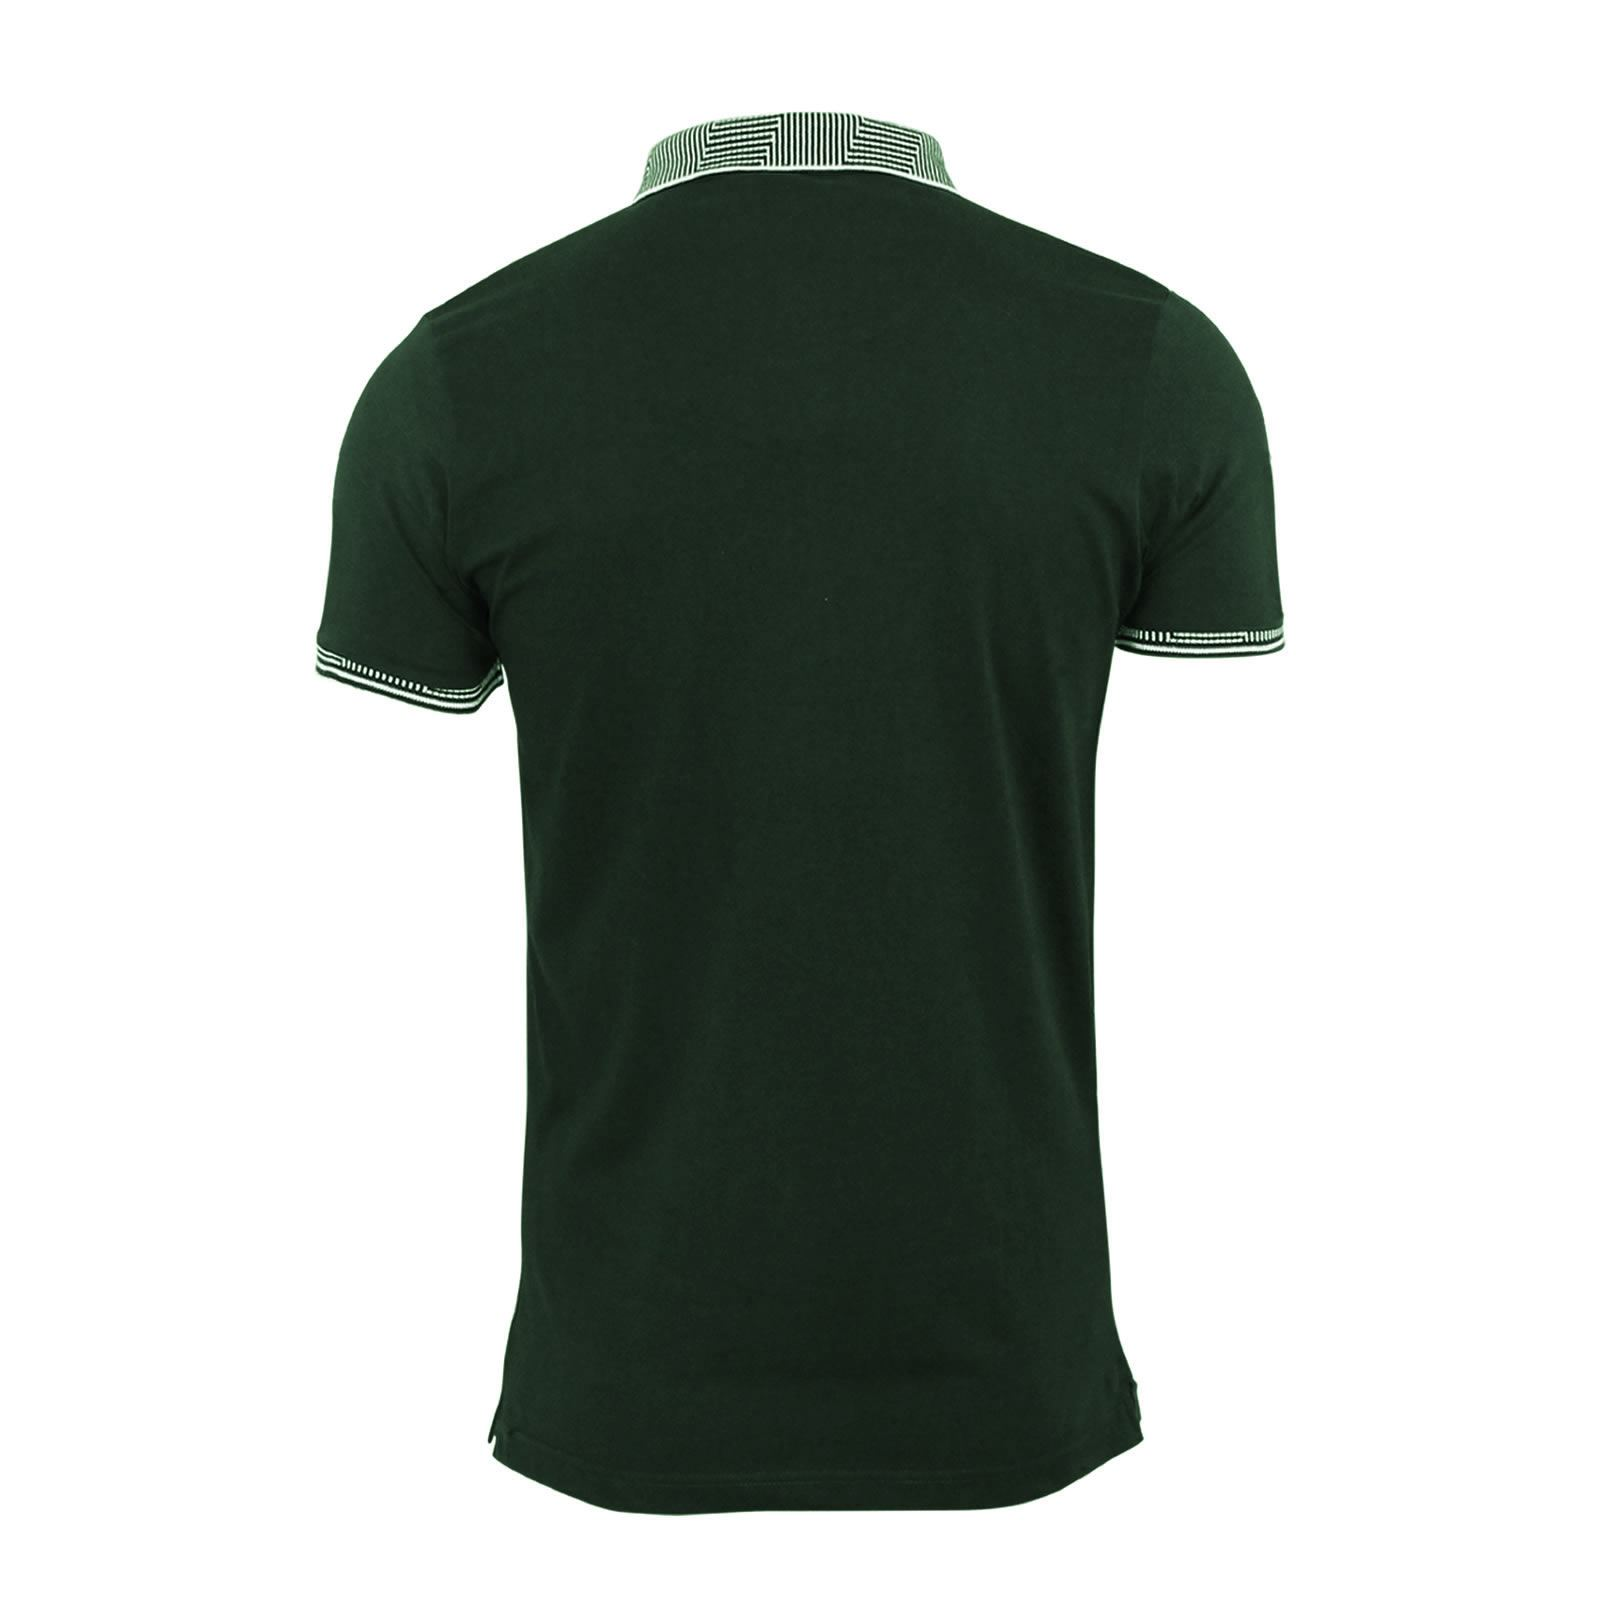 Brave-Soul-Glover-Mens-Polo-T-Shirt-Cotton-Collared-Short-Sleeve-Casual-Top thumbnail 42